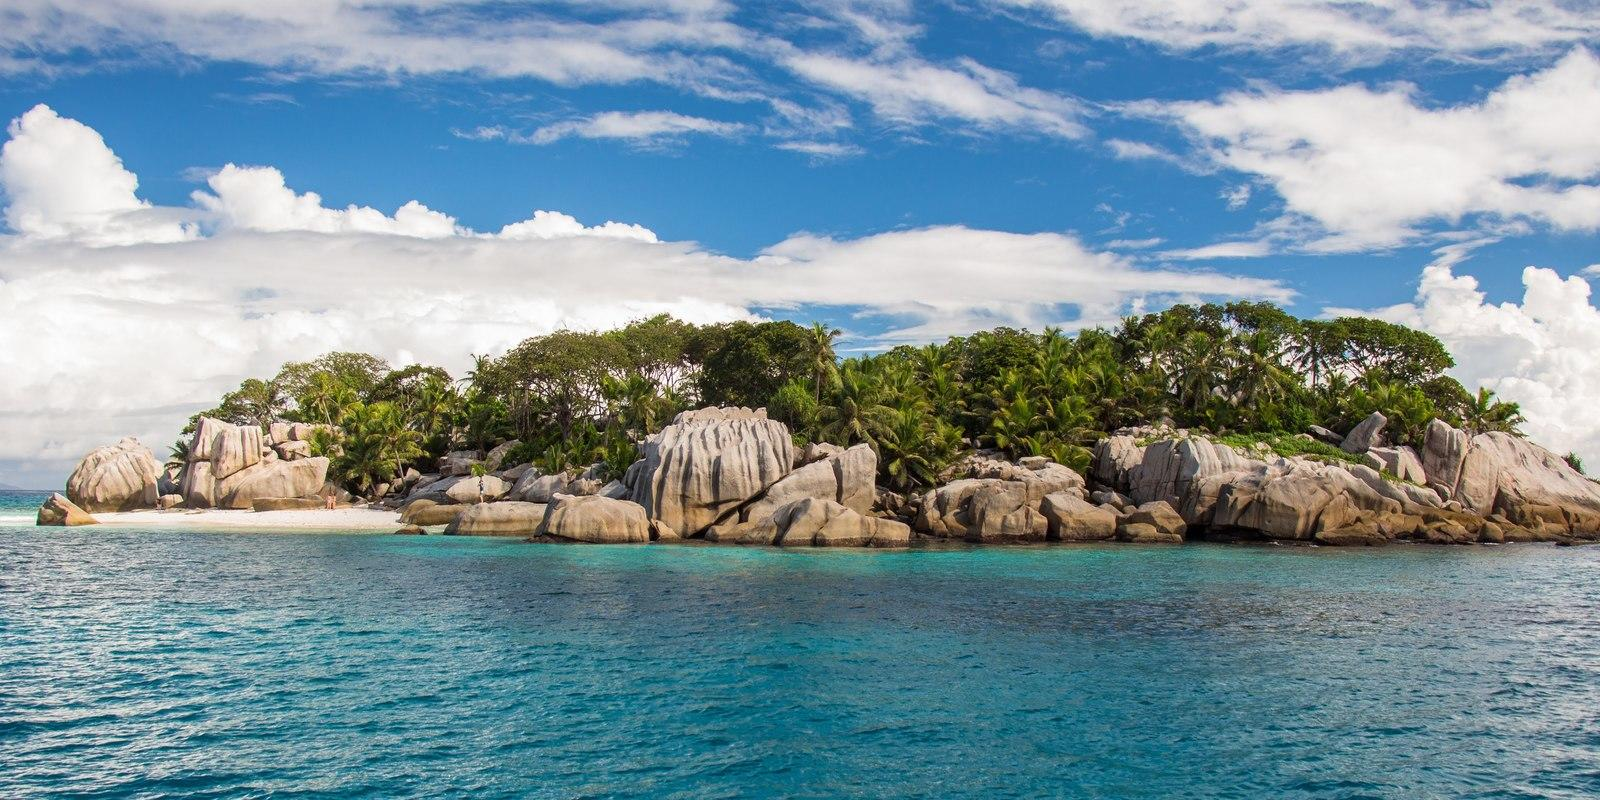 Cruise 8 days on a Catamaran with hostess in Seychelles - All Inclusive